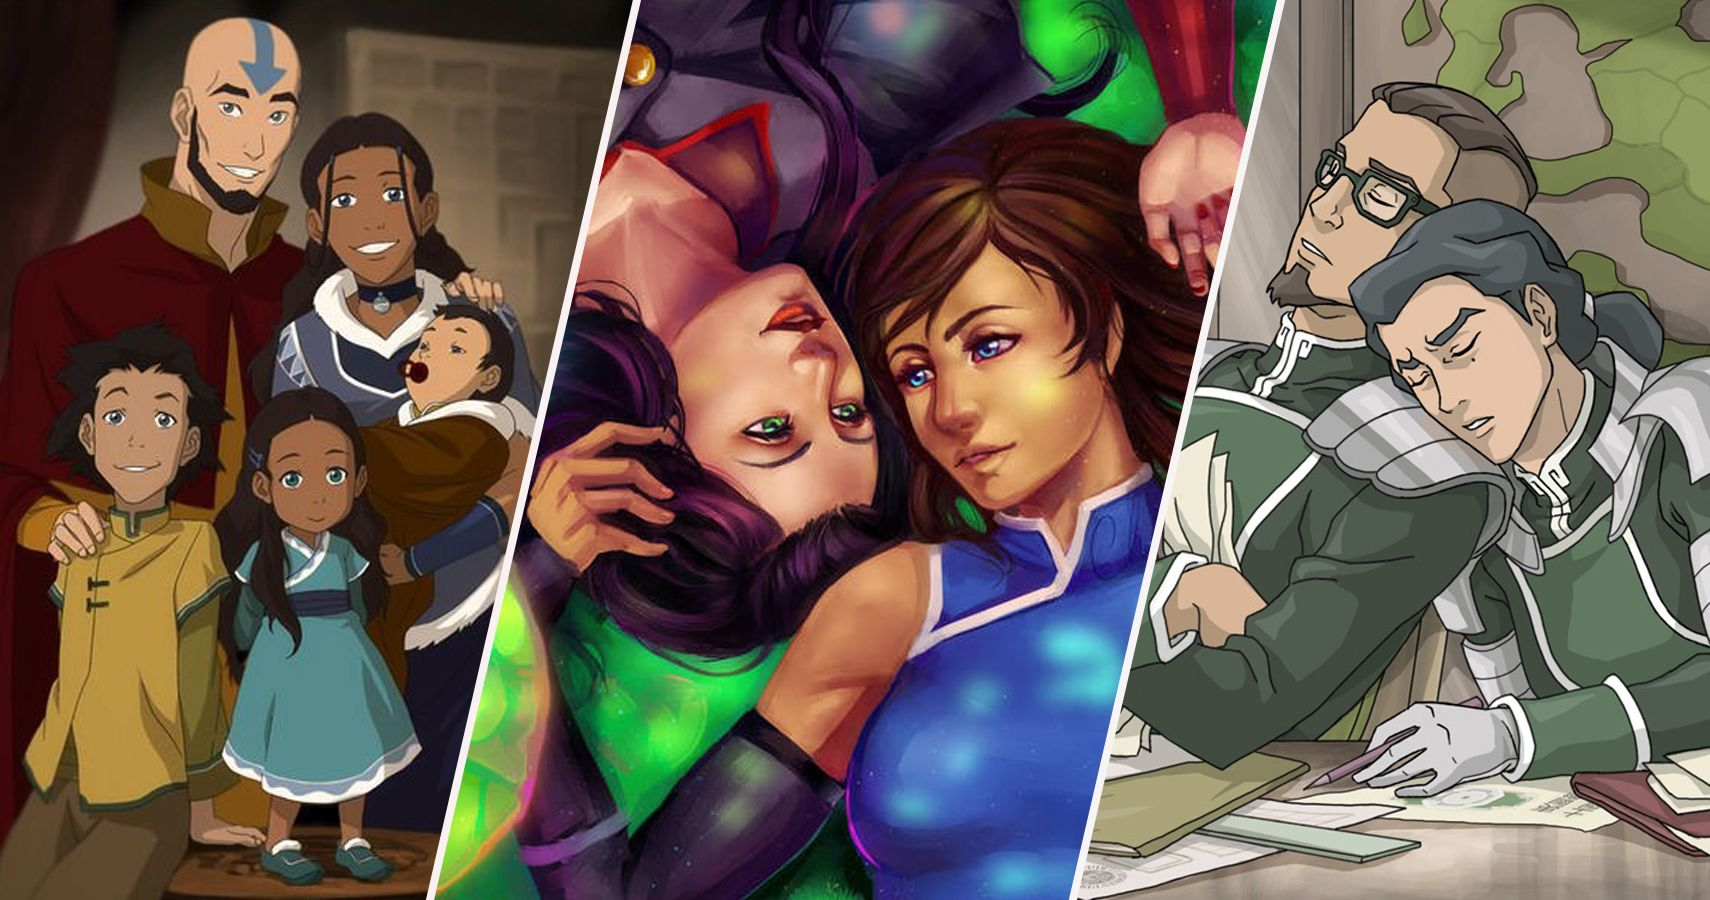 10 Couples That Hurt Avatar: The Last Airbender And Legend Of Korra